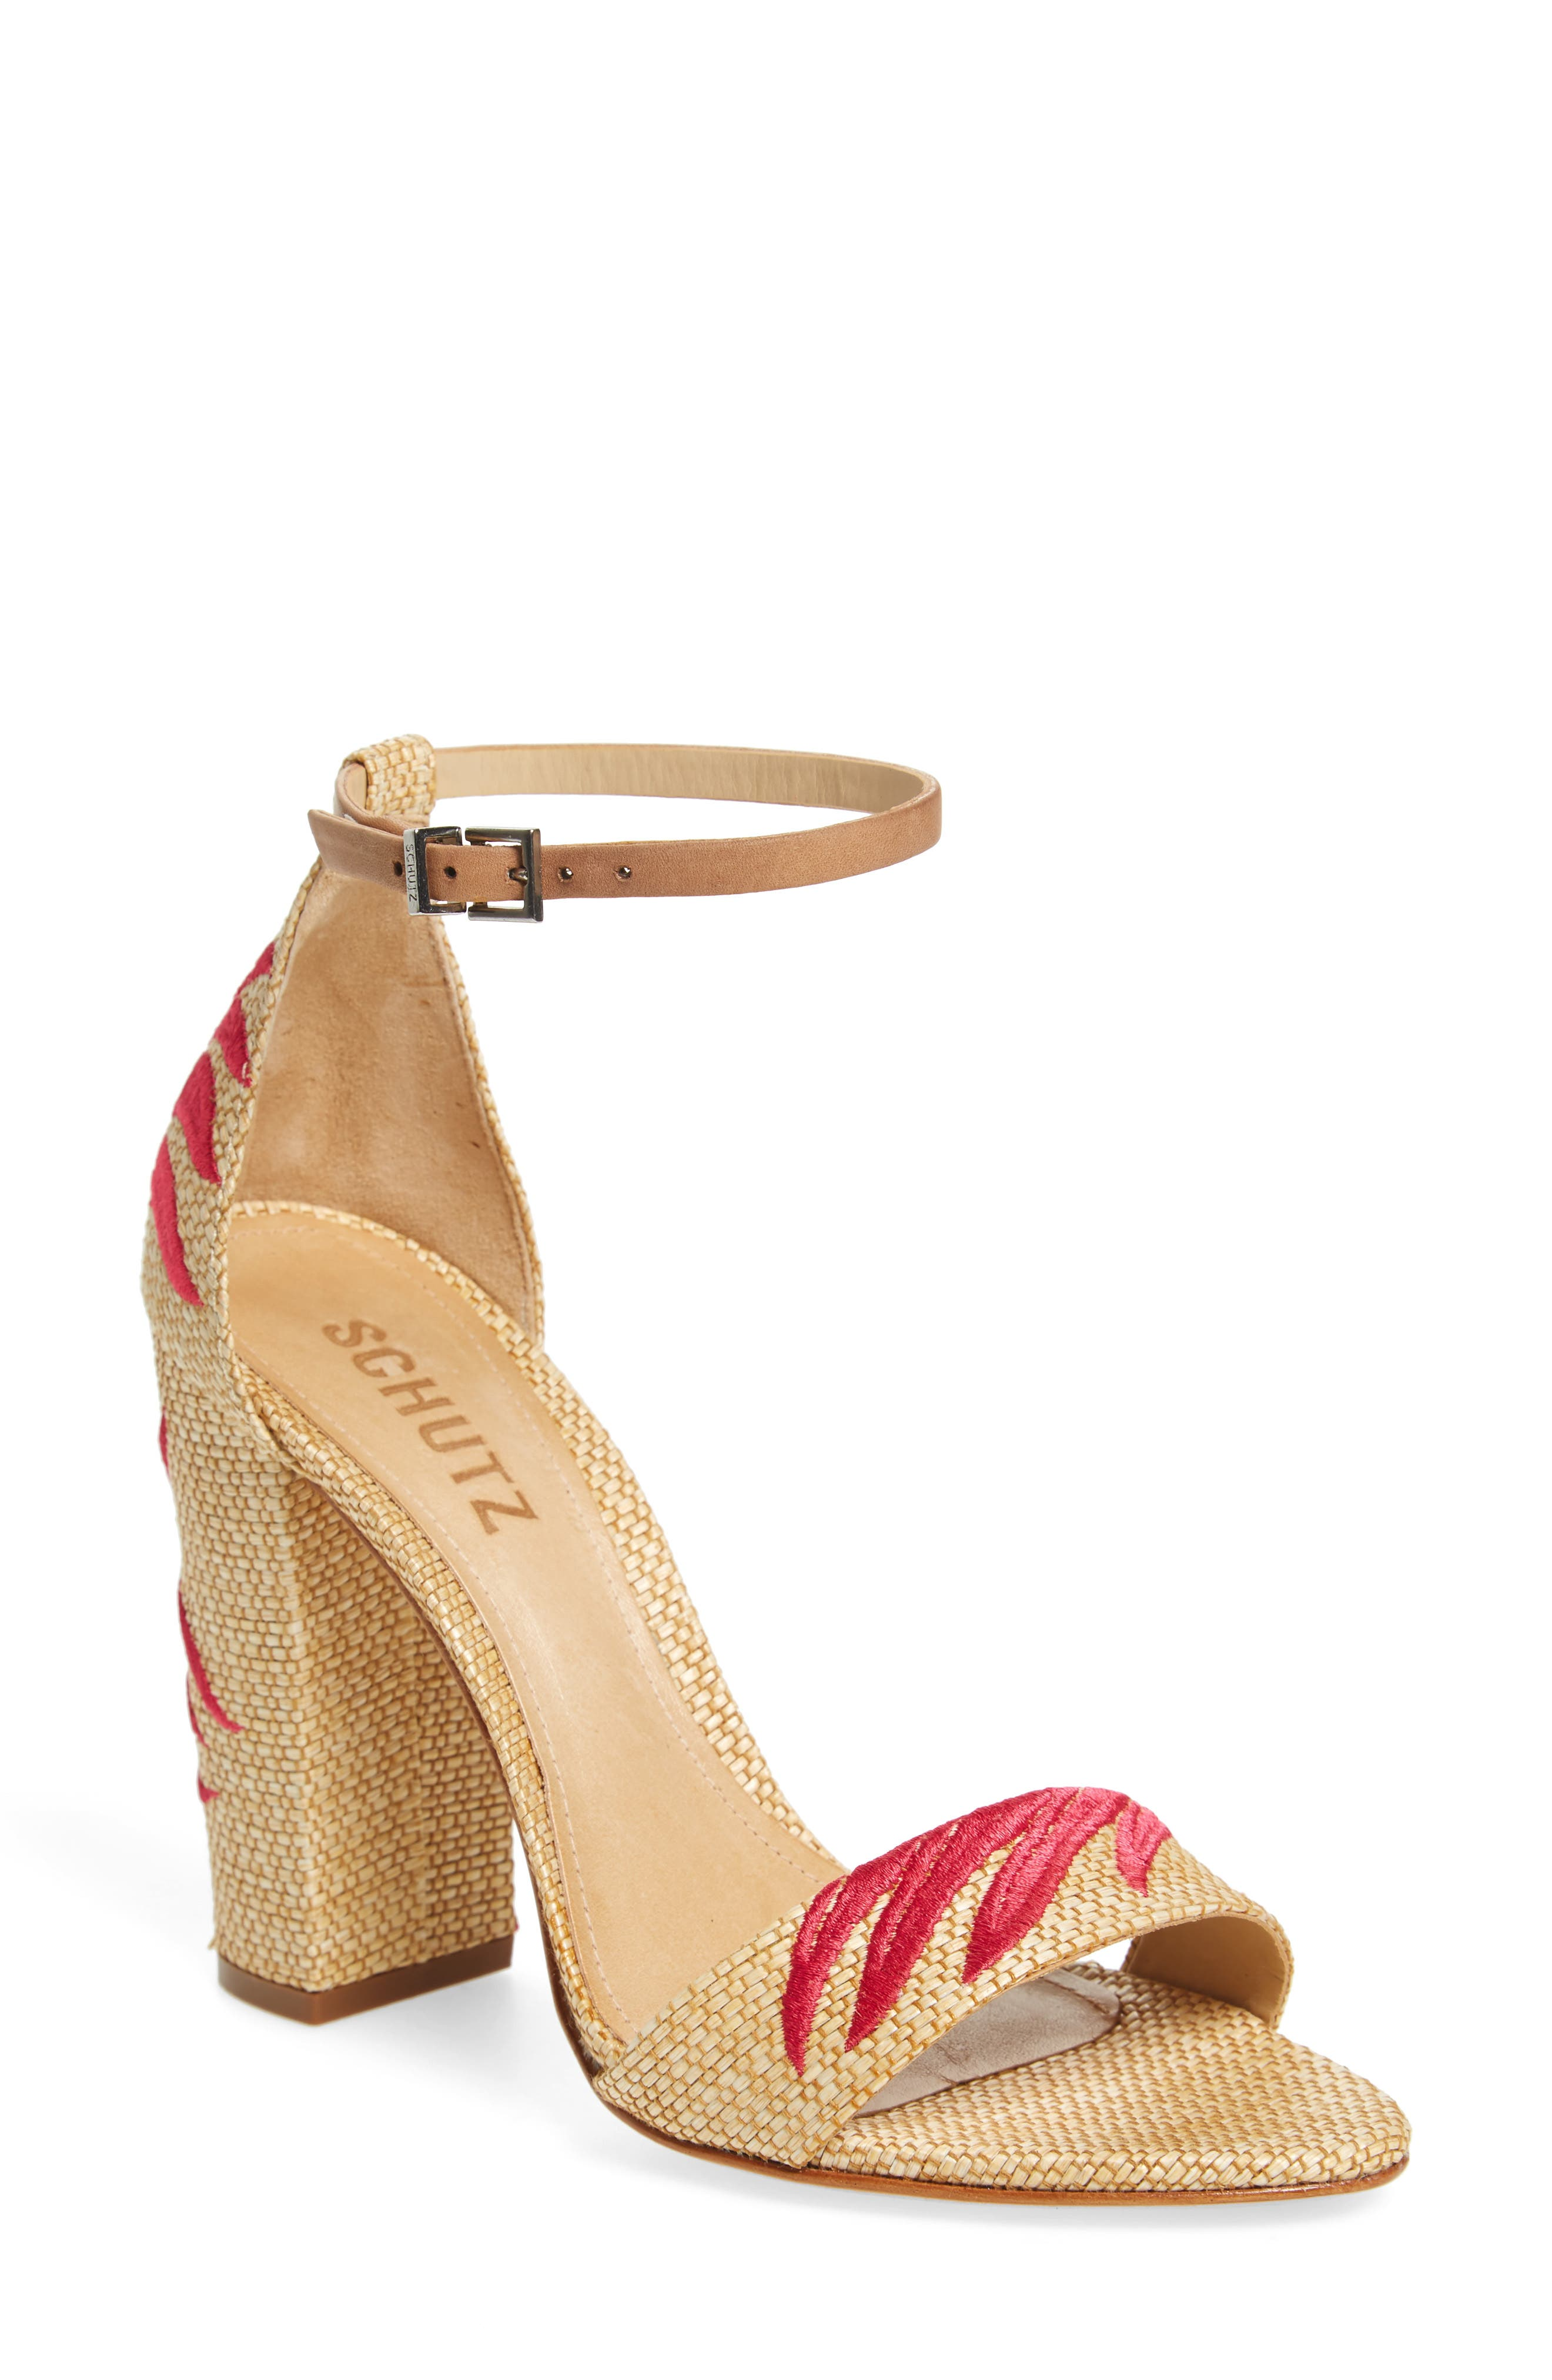 Alternate Image 1 Selected - Schutz Carolaine Woven Sandal (Women)